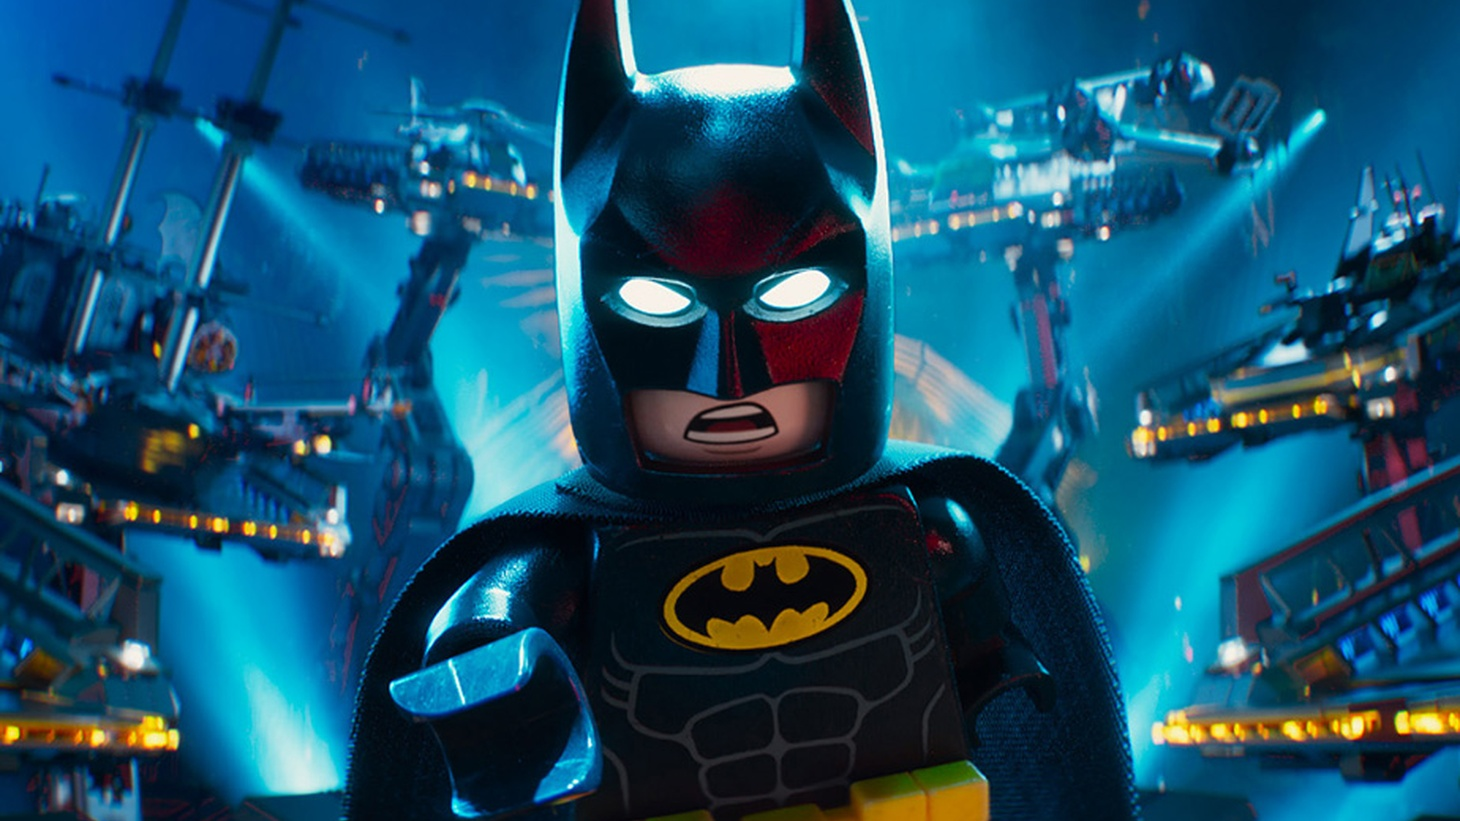 The LEGO Batman Movietargets the familiar universe of superheroes and extravagant villains, with a subplot reminiscent of The Incredibles -- society has come to see Batman and his ilk as vigilantes who need to learn the value of teamwork.